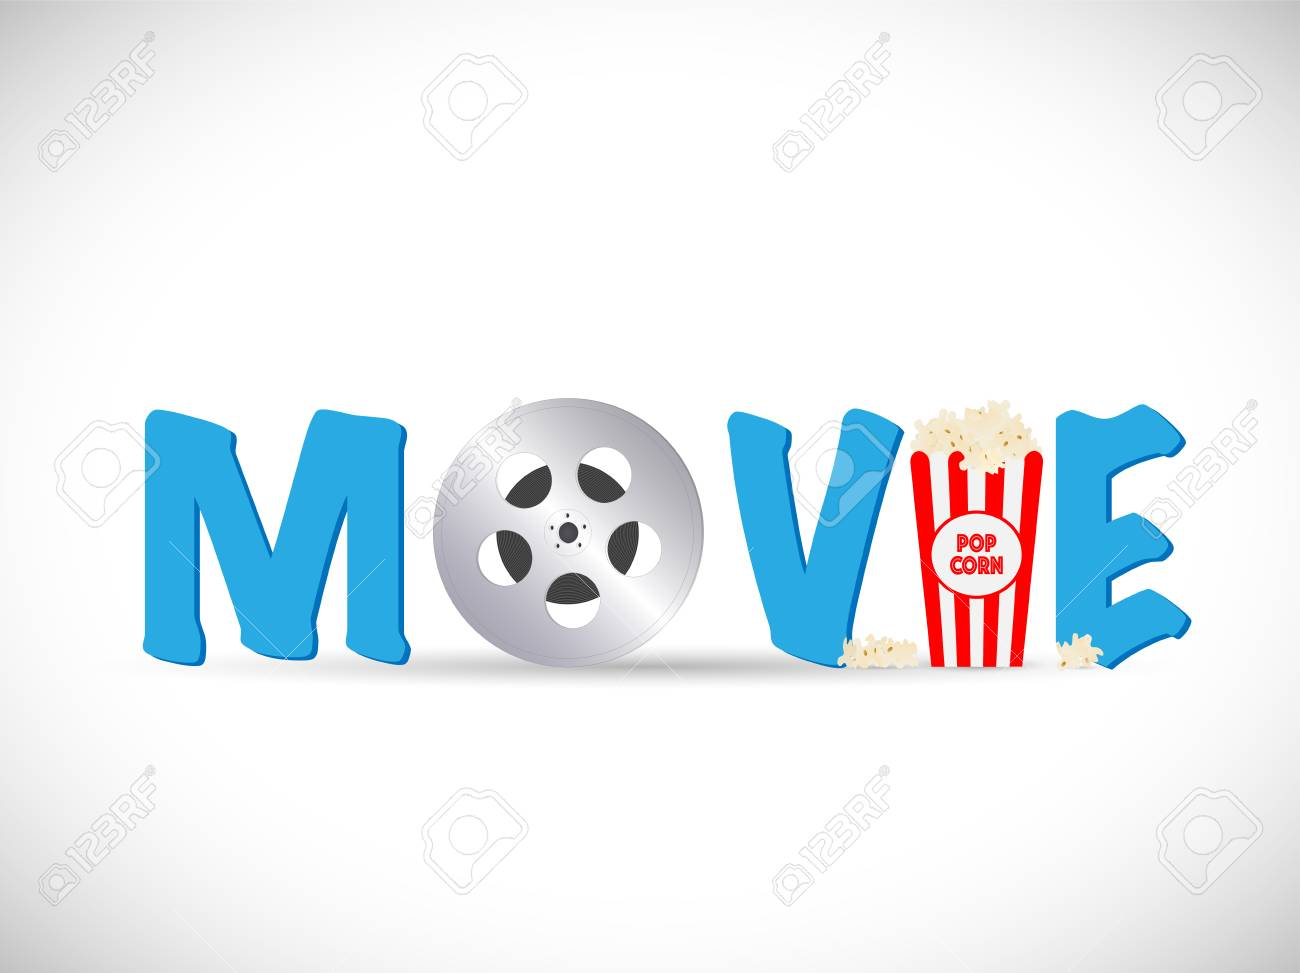 Illustration of a movie text image isolated on a white background. - 97016244